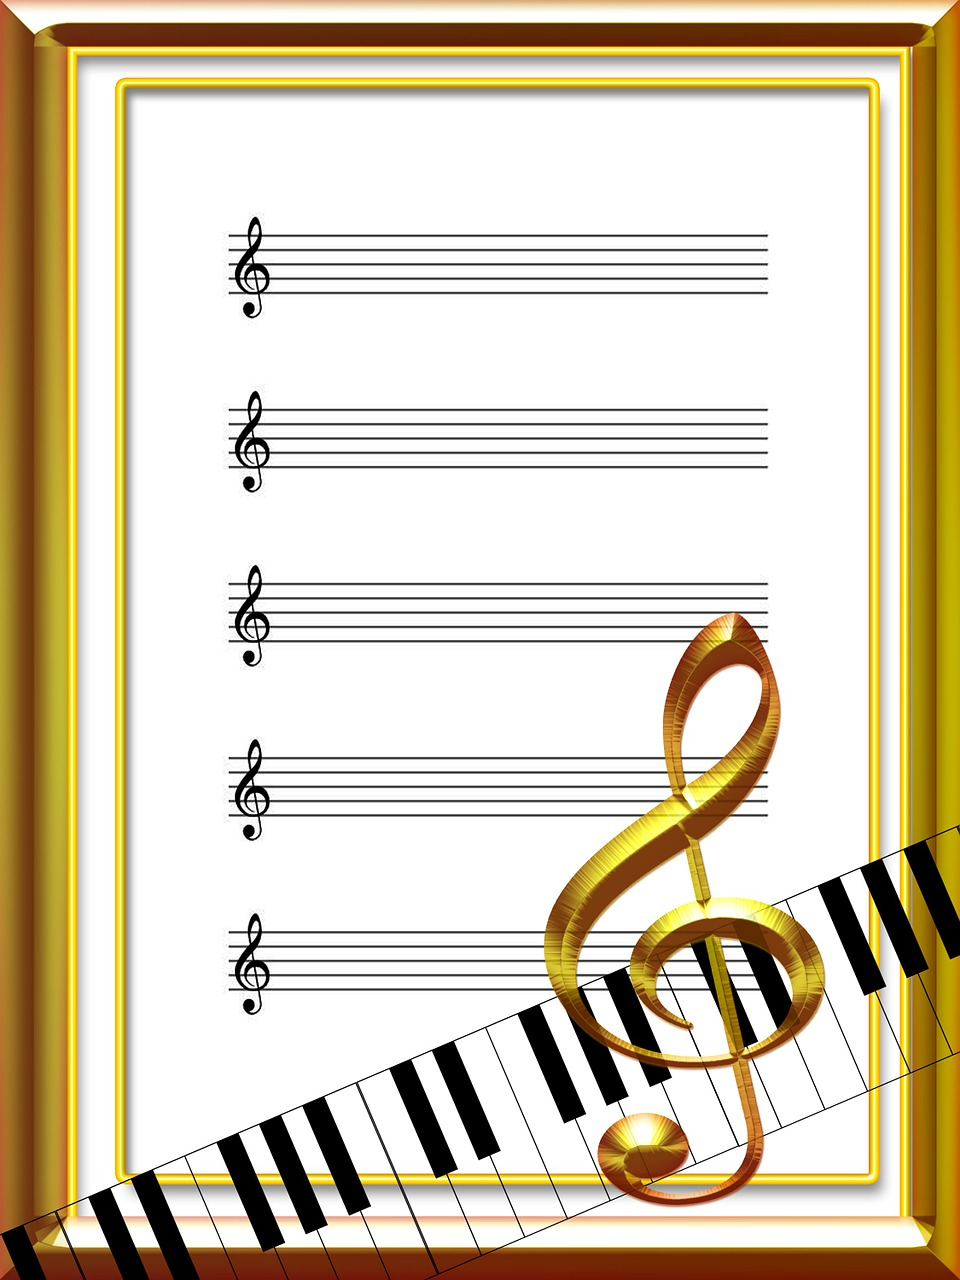 music sheet music acoustics free photo